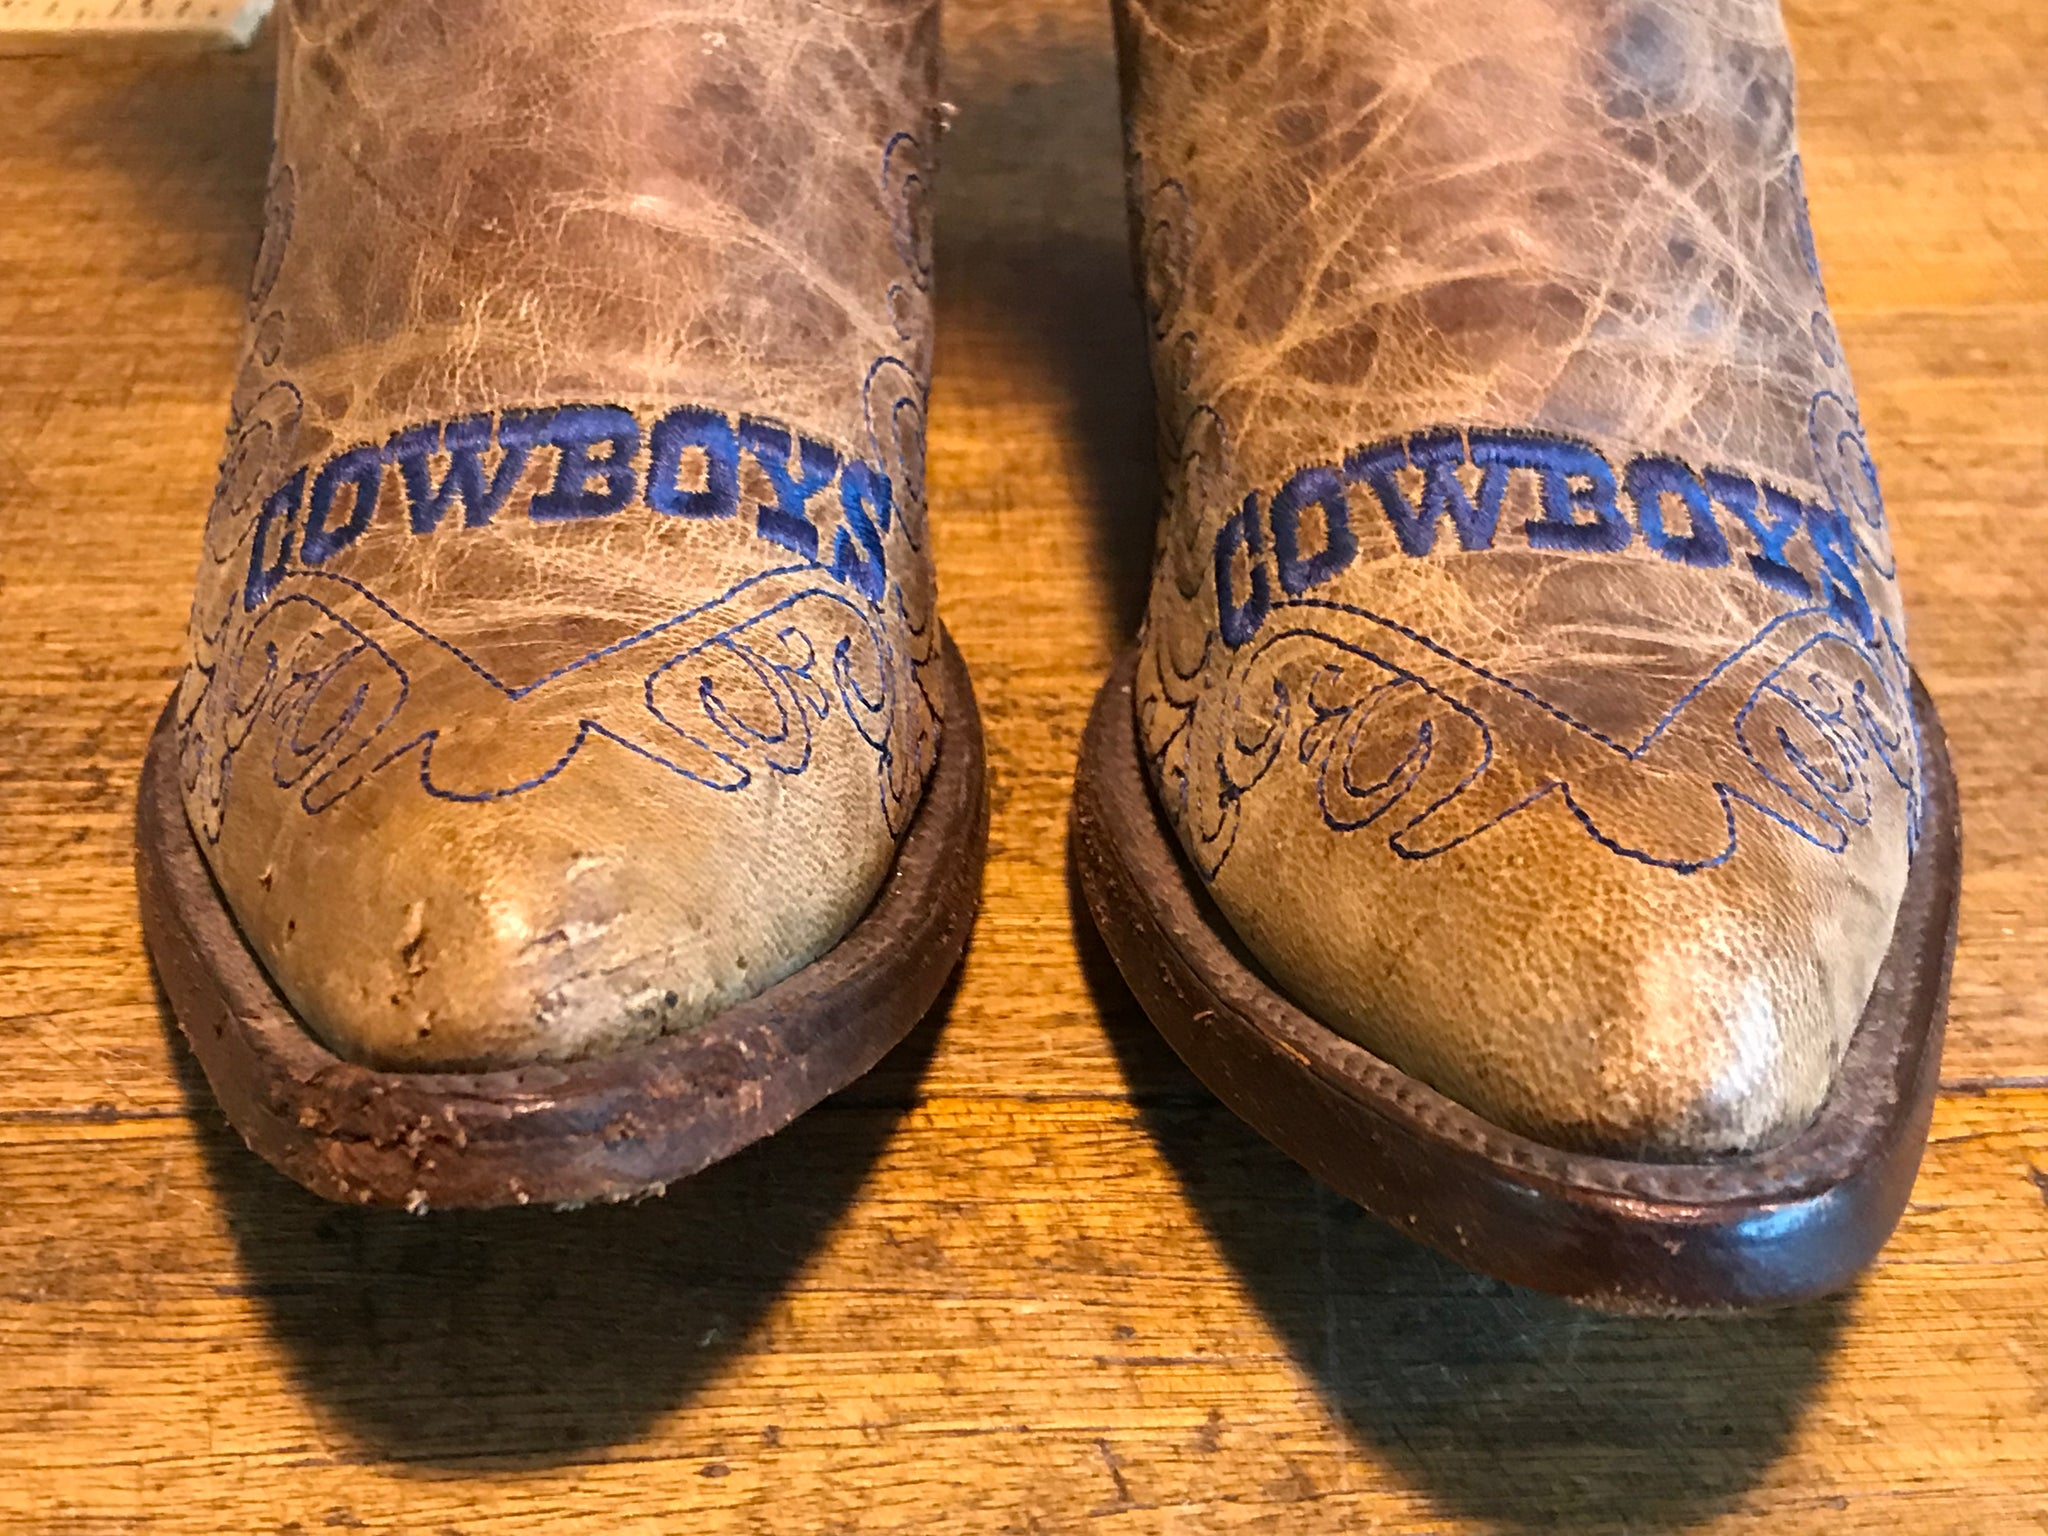 Dallas Cowboys NFL Vintage Flyover Cowboy Boot -Womens by Old Pro Leather Goods Co